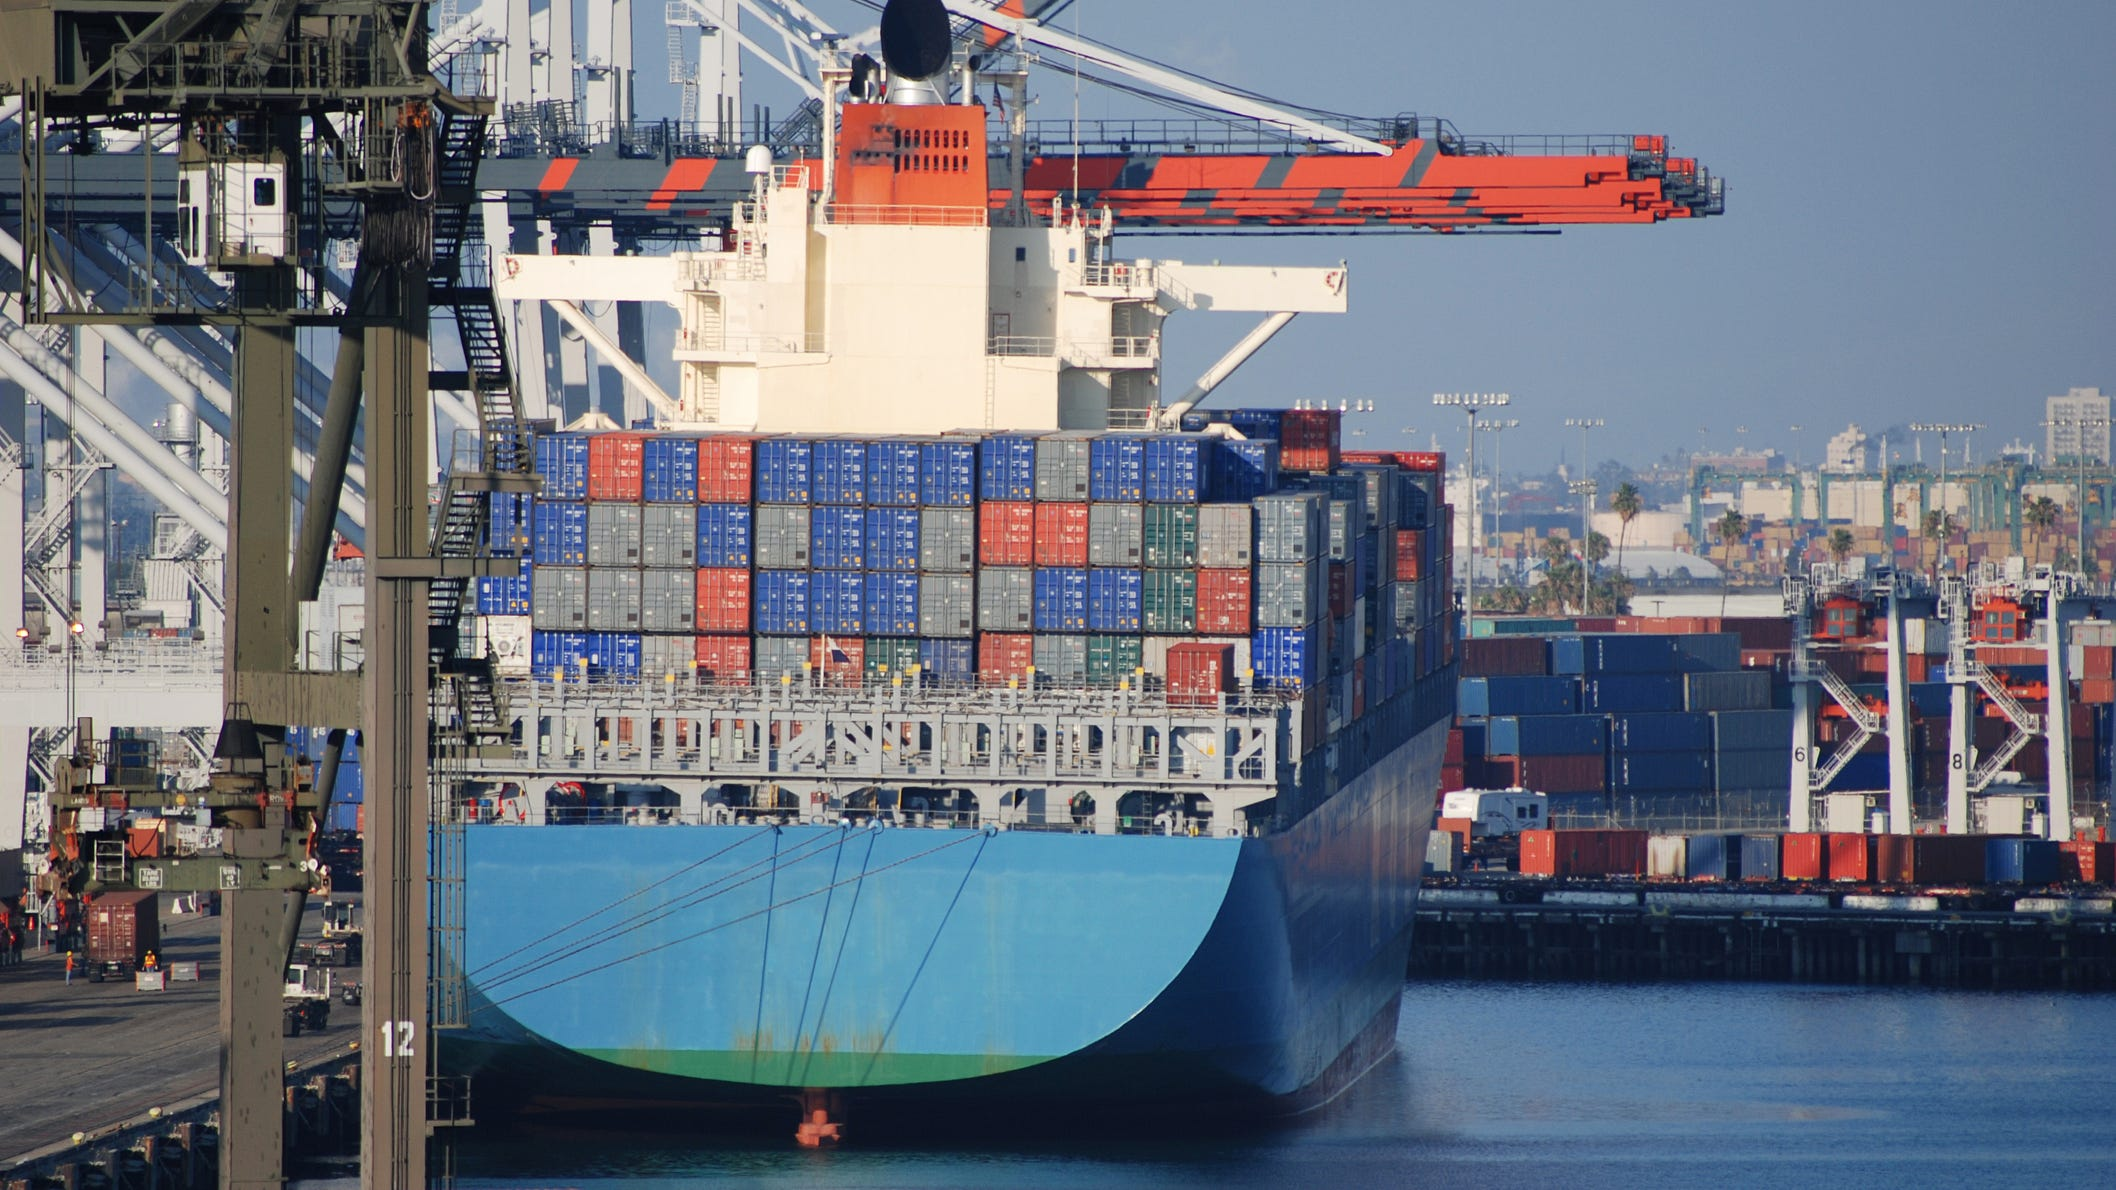 Biden: Port of L.A. to operate 24/7 to reduce supply chain gridlock